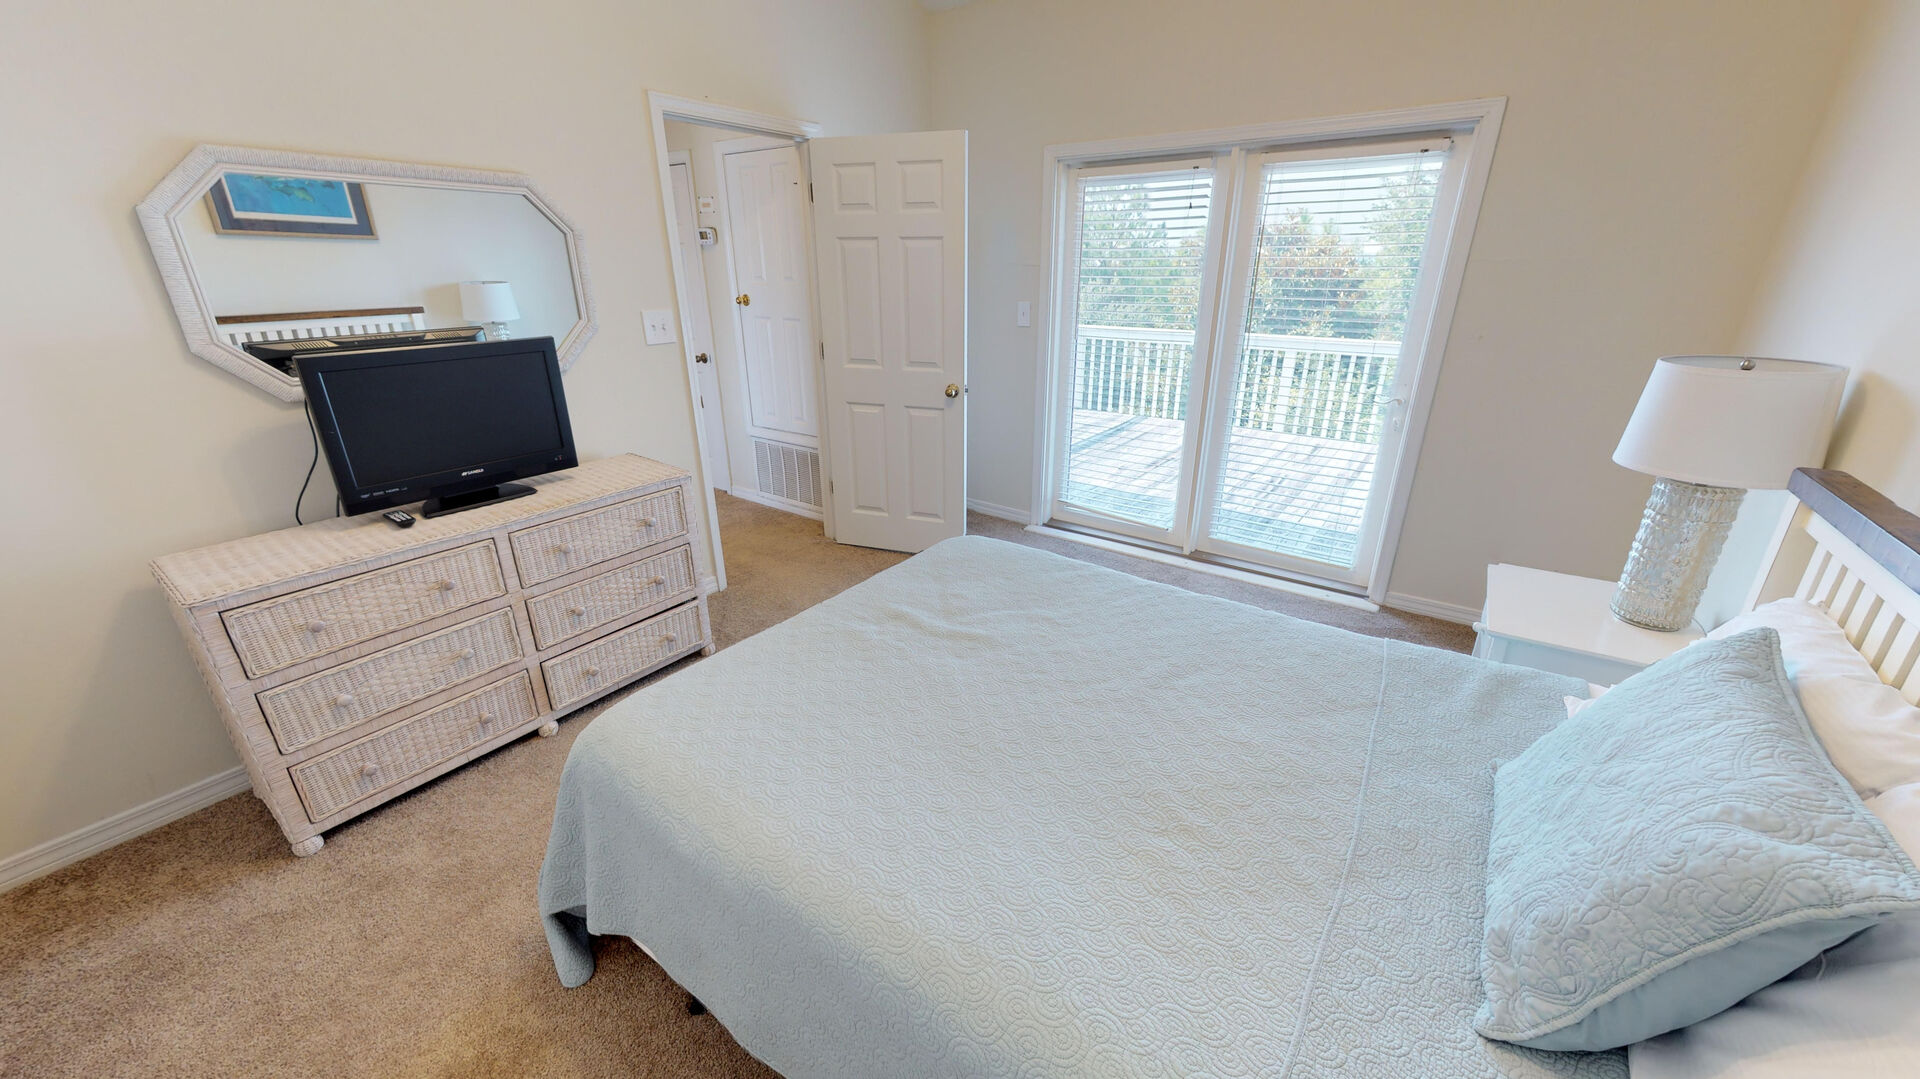 On the 3rd floor, bedroom 3 has a queen bed and a private deck